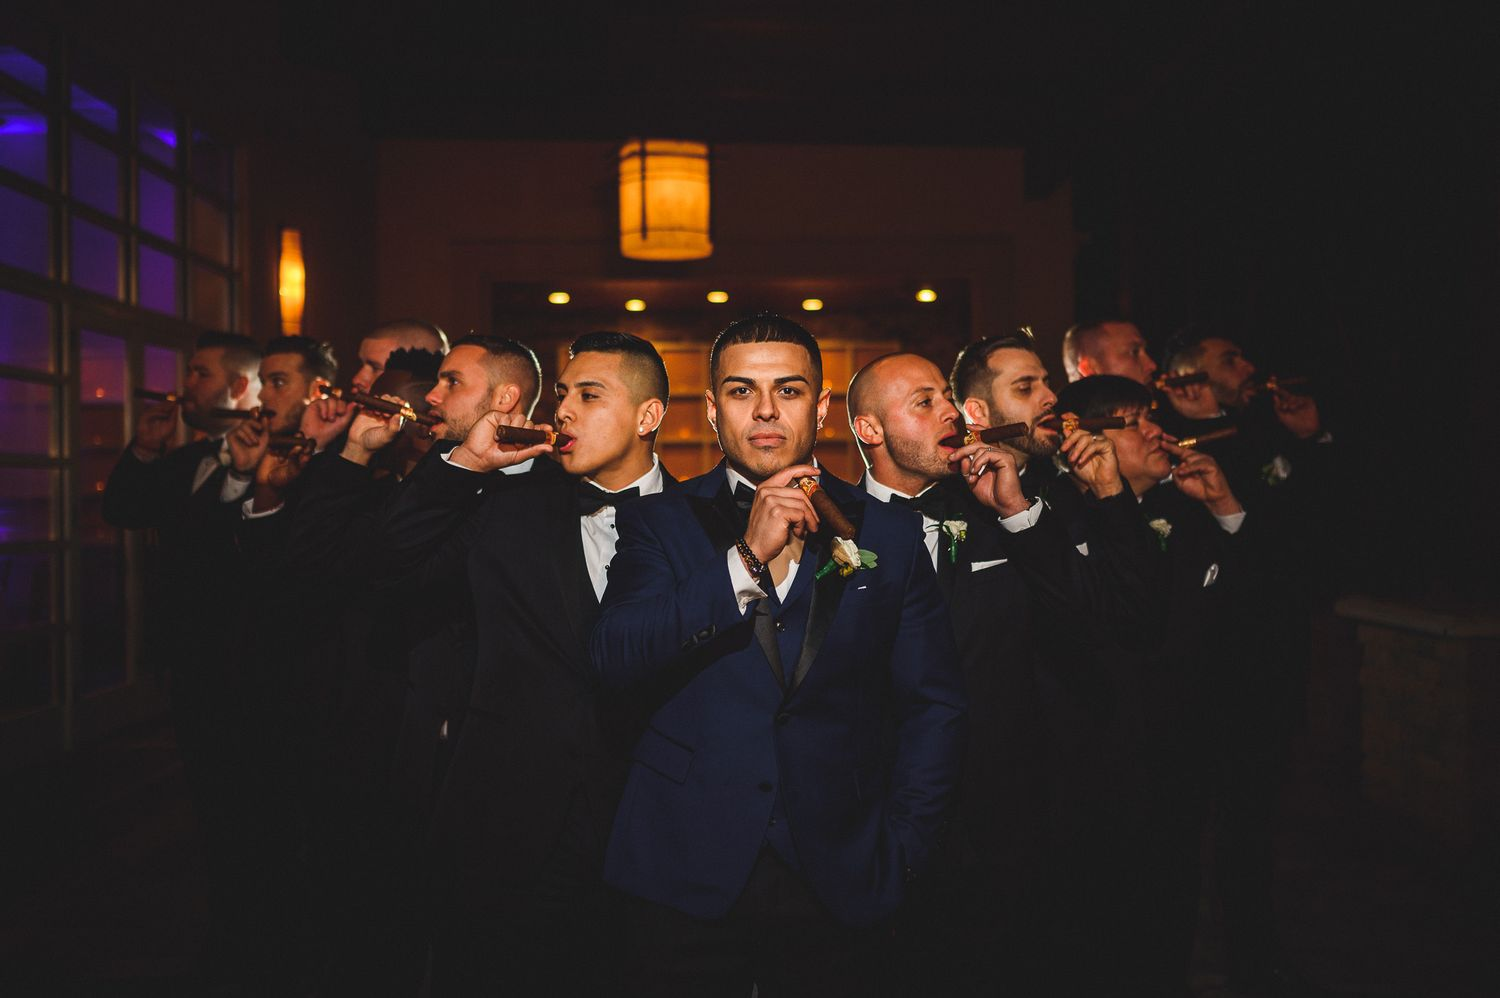 groomsman wise guy portrait with cigars at stone house